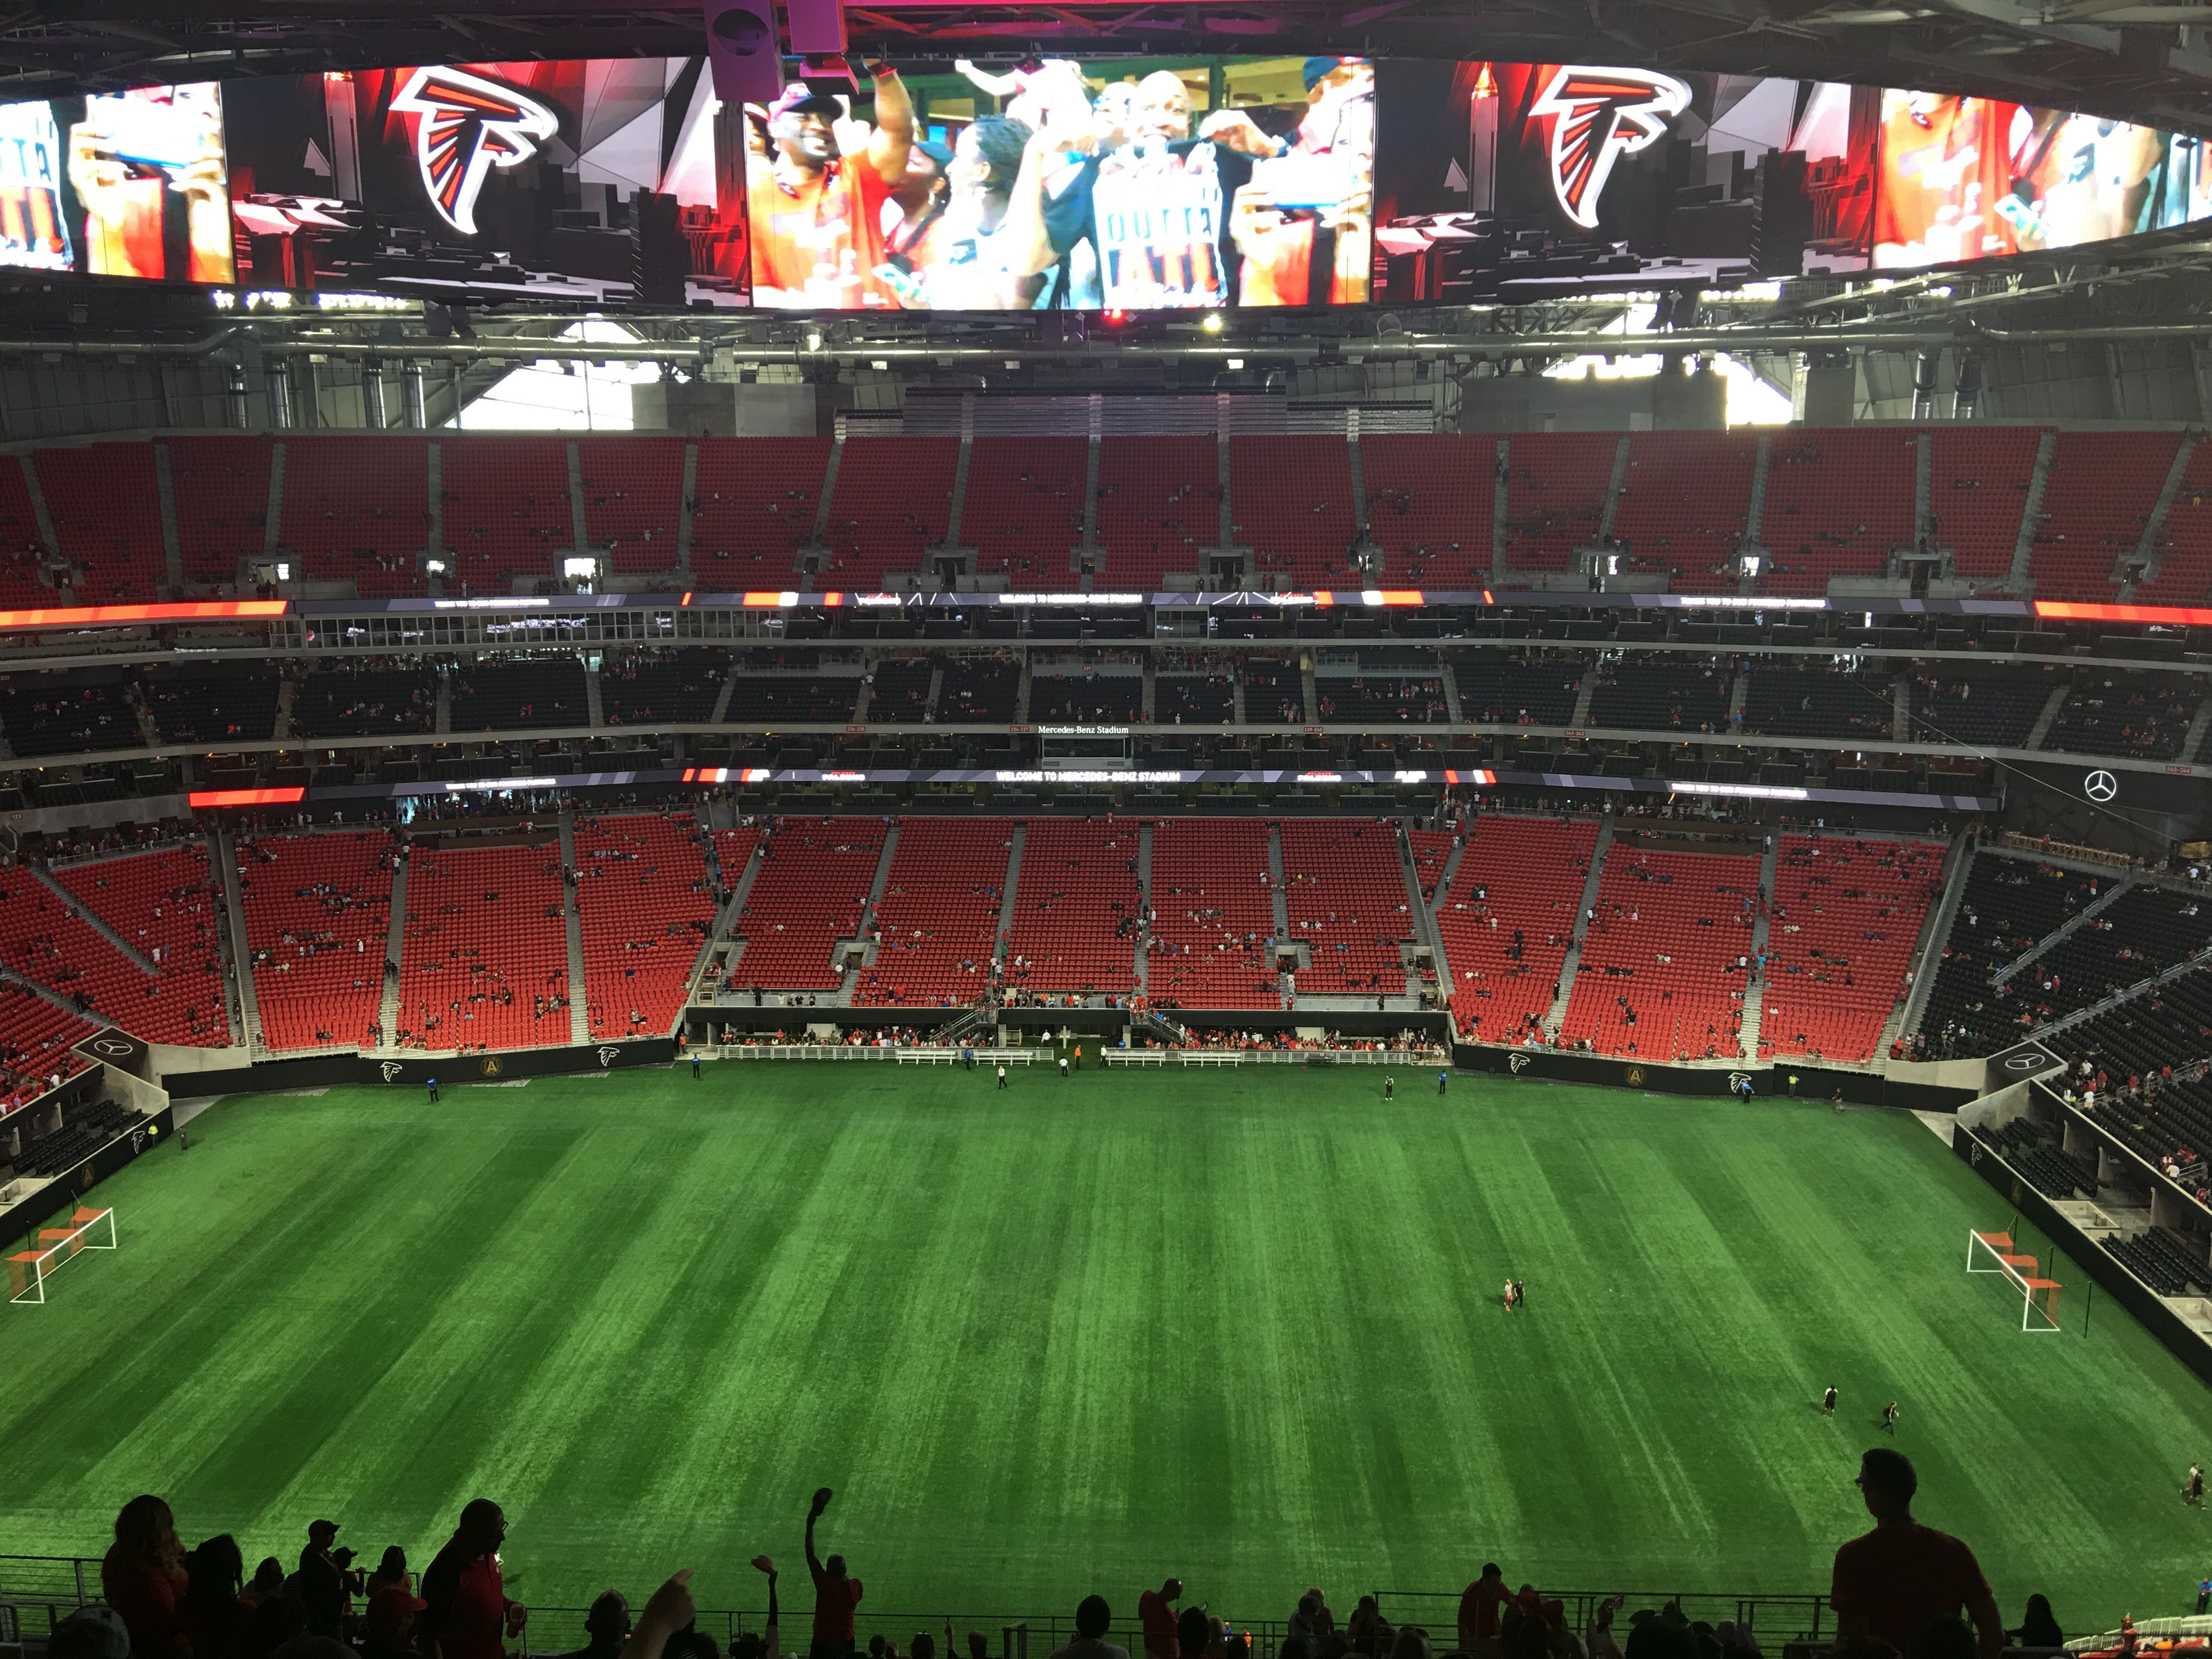 Everyone loves some football so why not go to the awesome Georgia Dome and see the NFL S Atlanta Falcons play